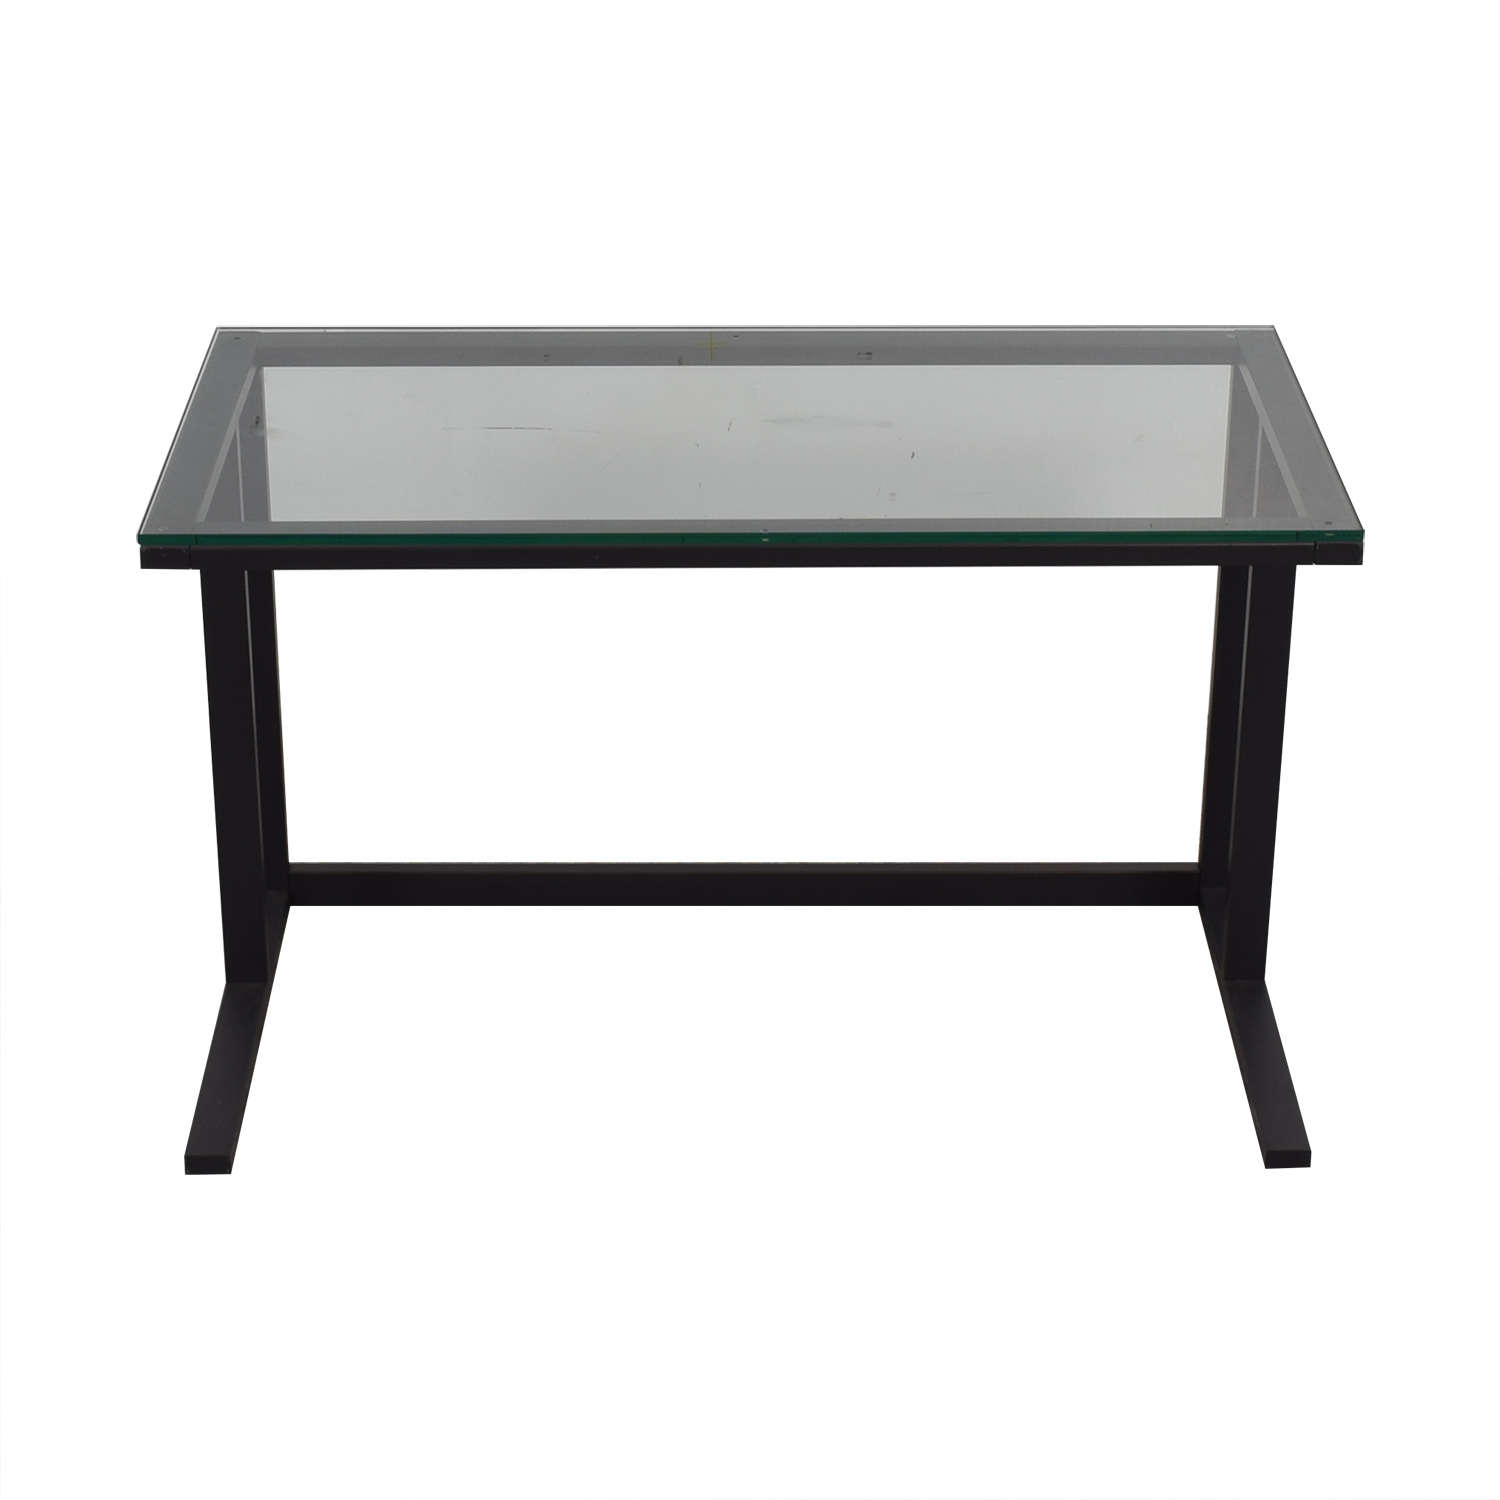 Glass and Black Base Desk for sale